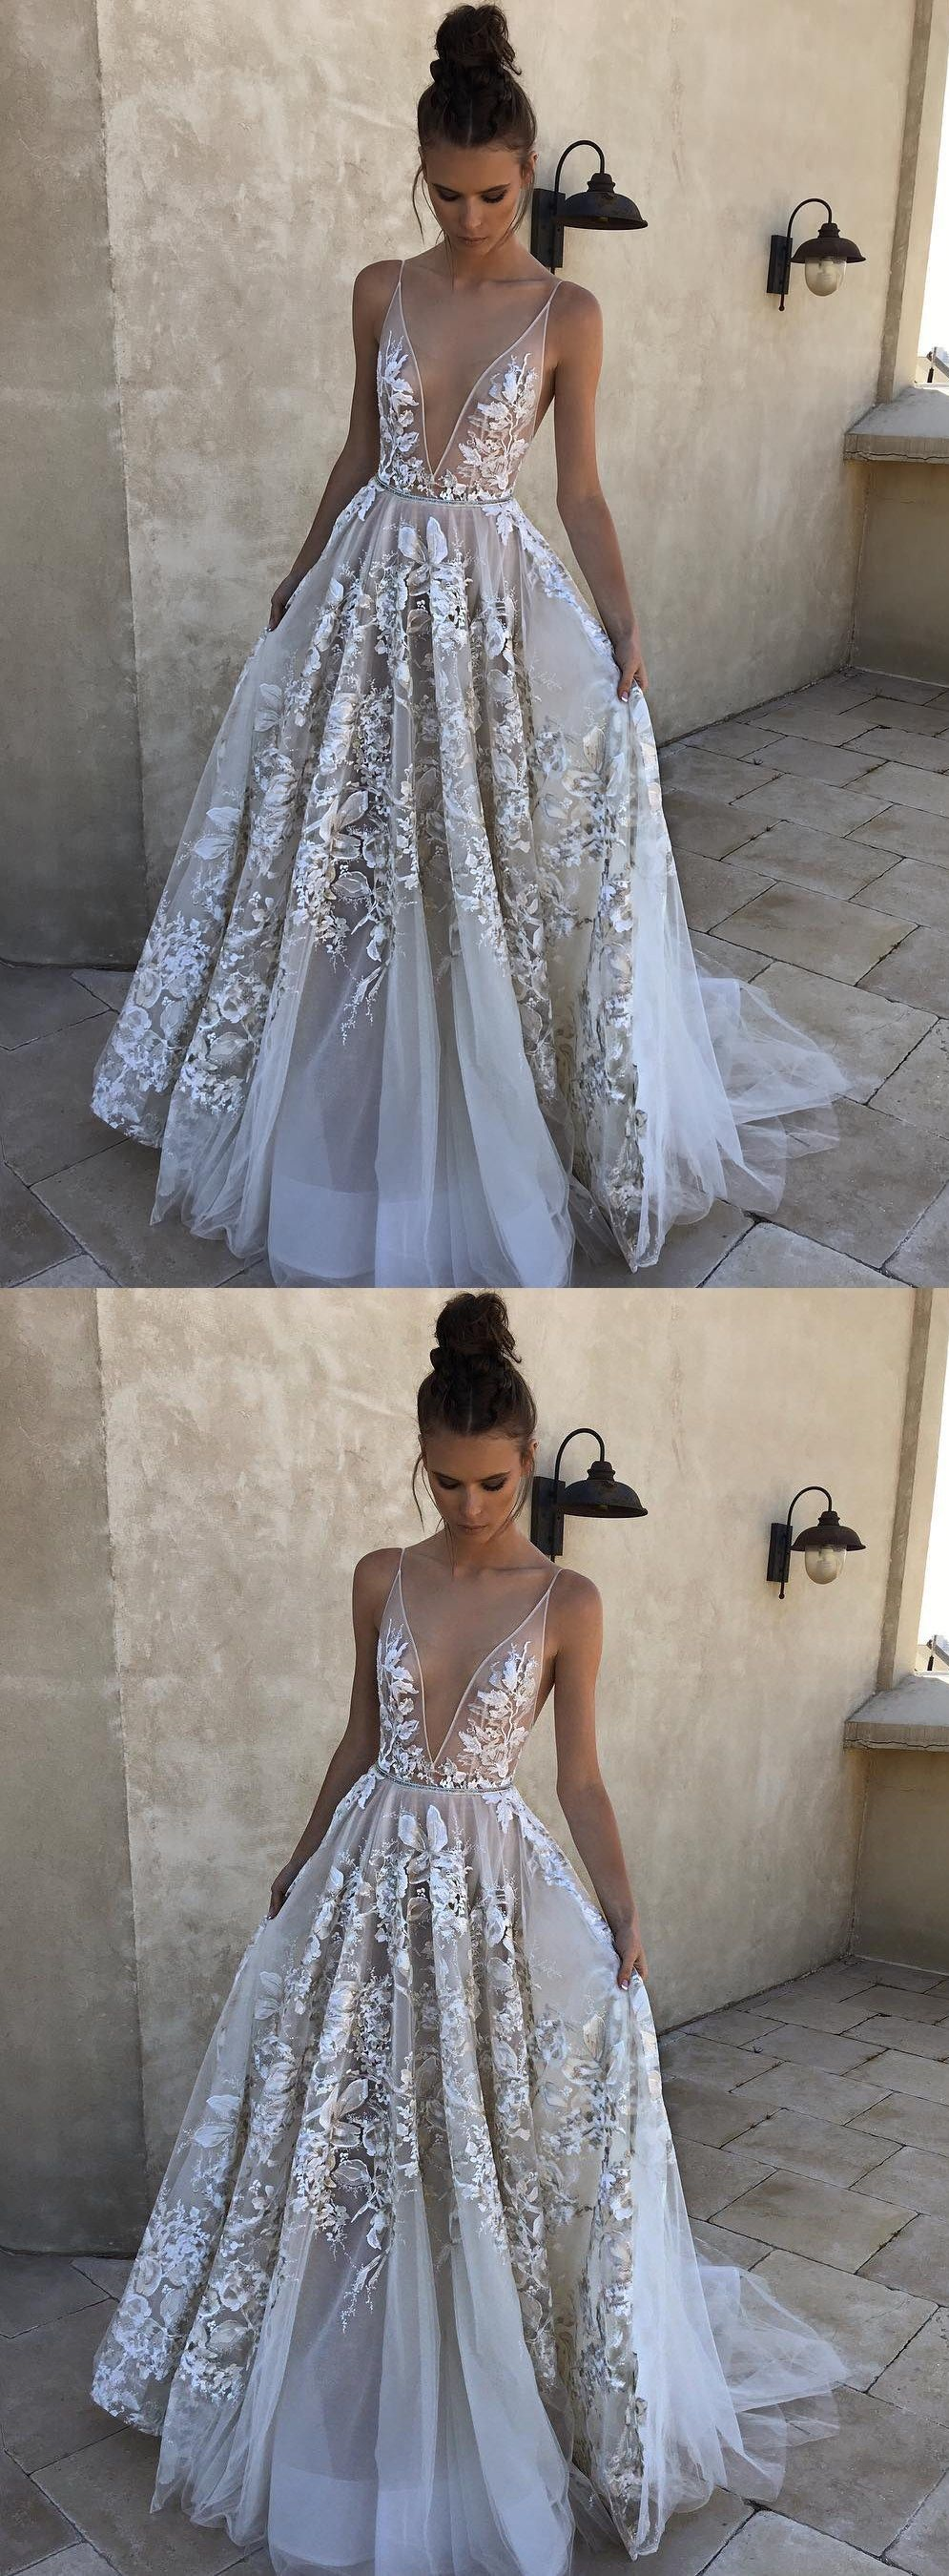 Aline deep vneck sweep train ivory tulle prom dress with appliques